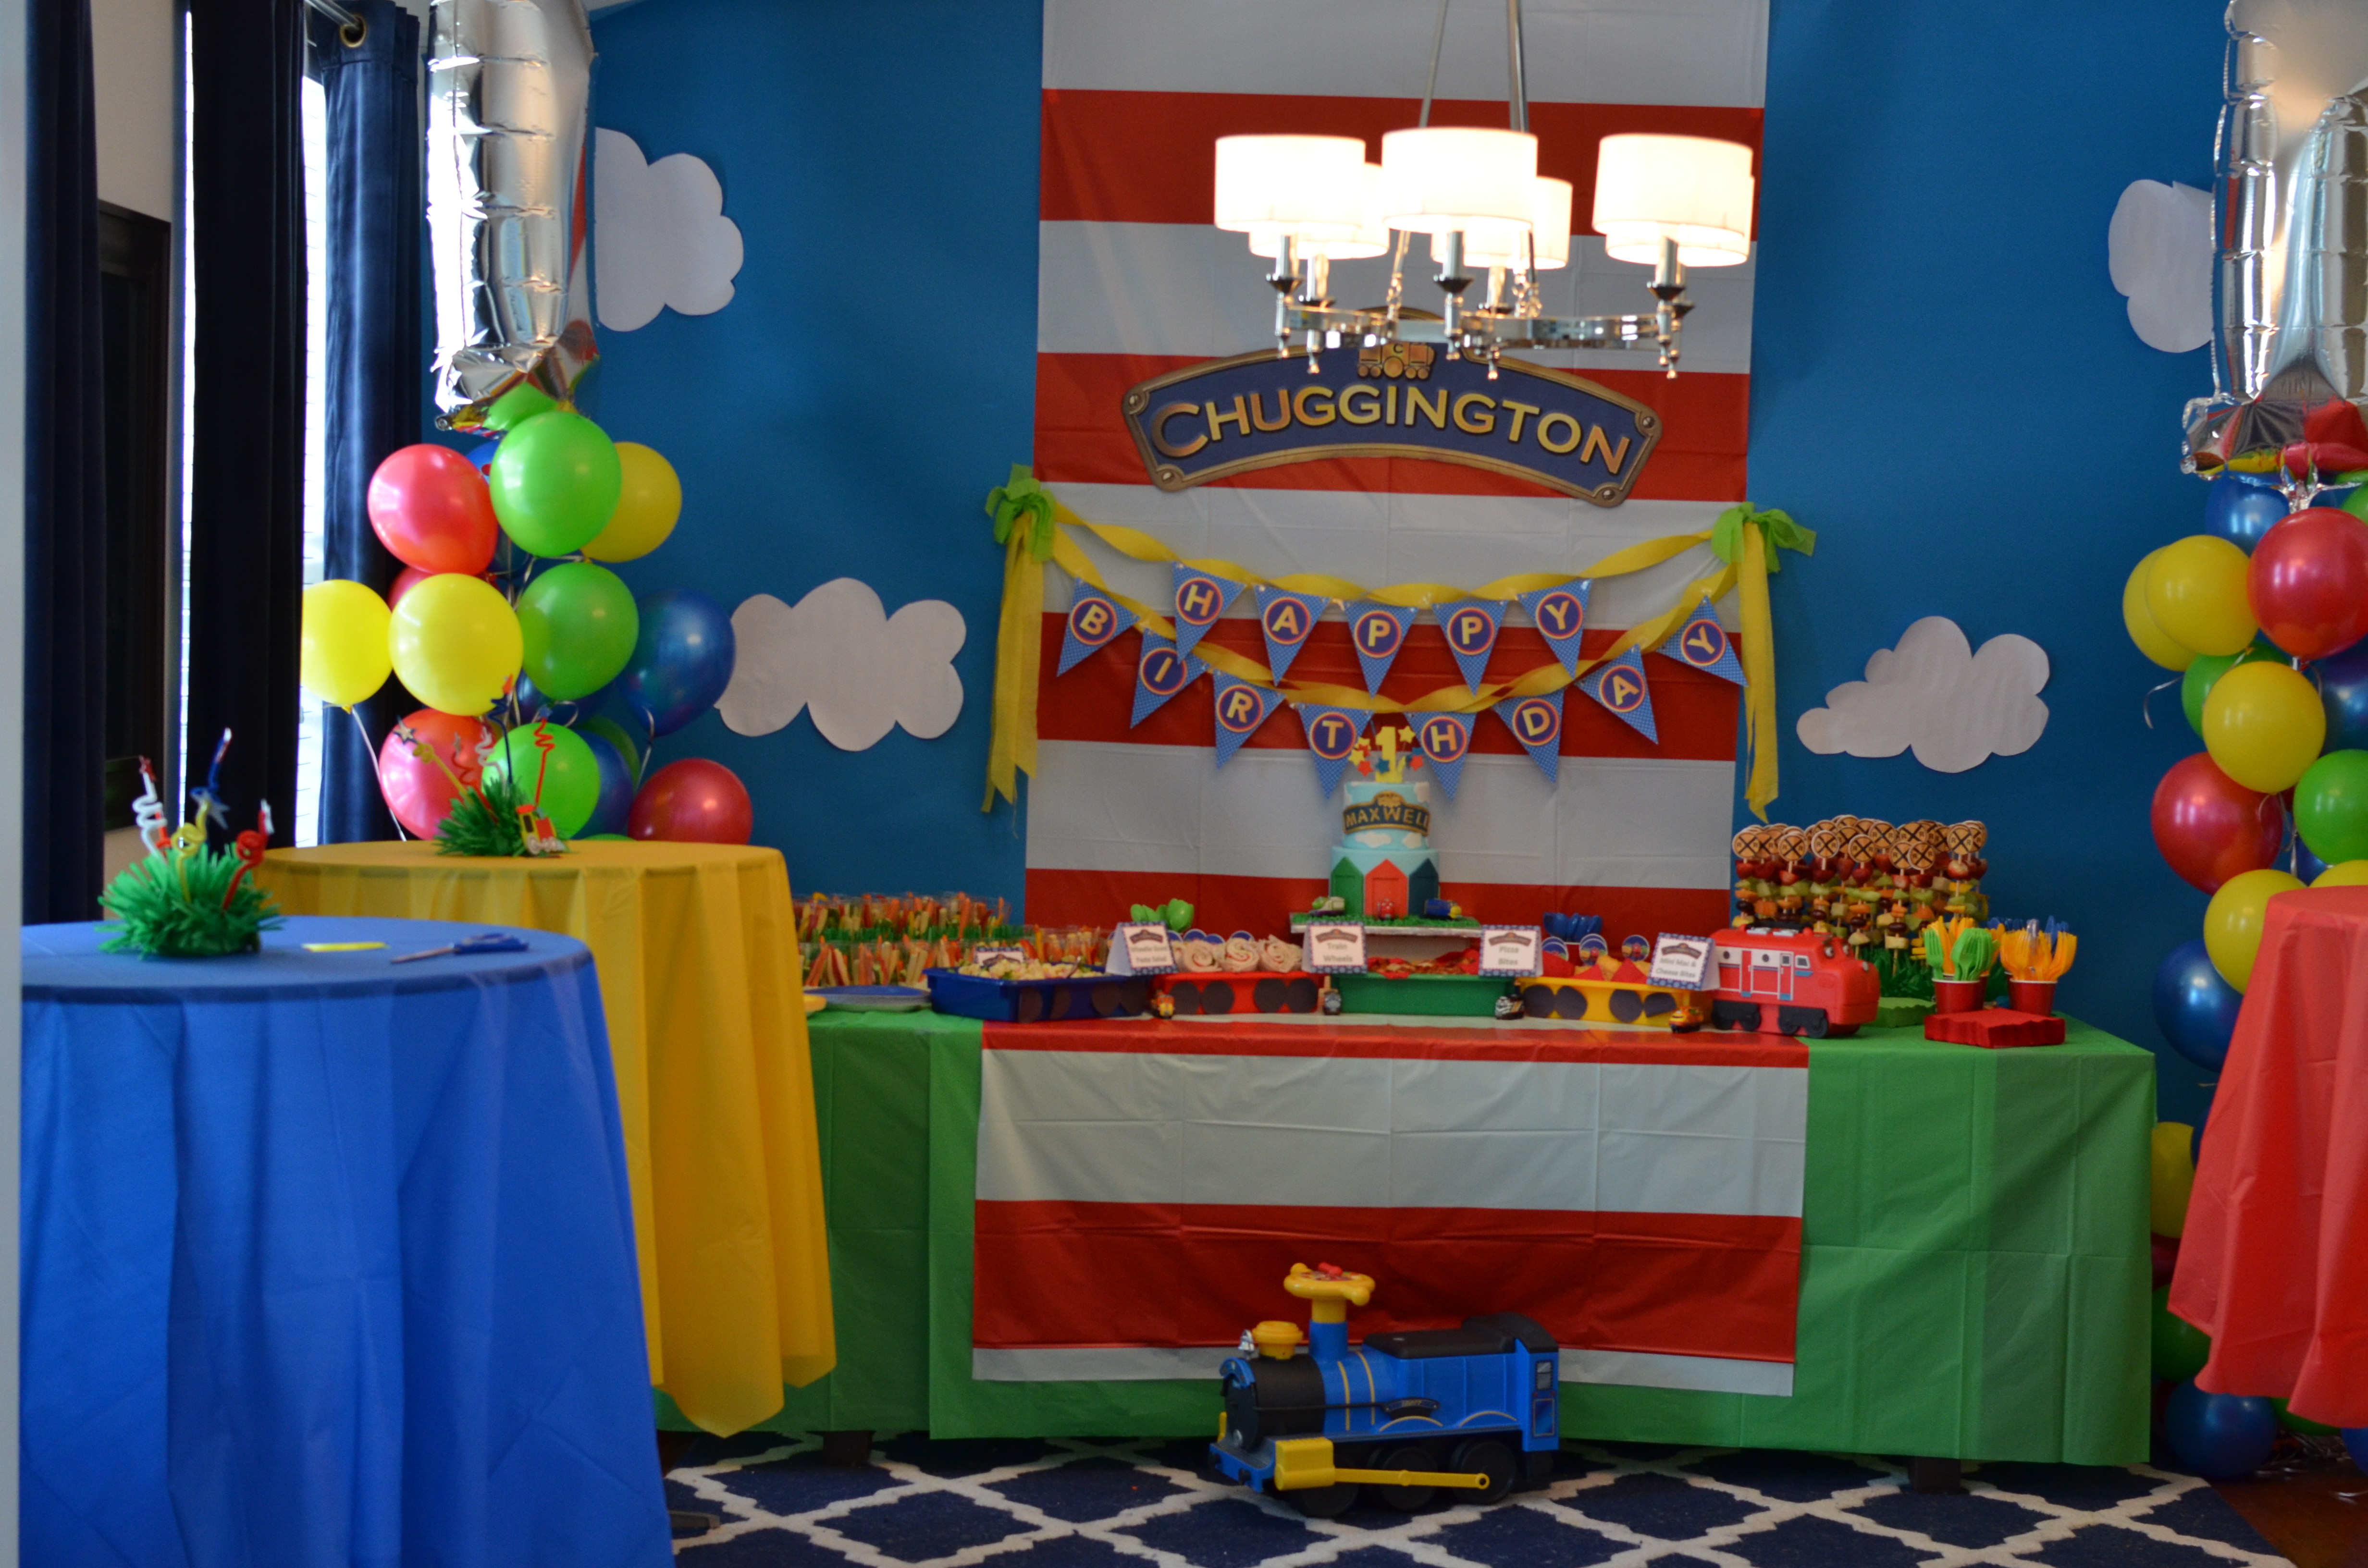 Best ideas about Birthday Party Project . Save or Pin Maxwell s Chuggington First Birthday Party Project Nursery Now.